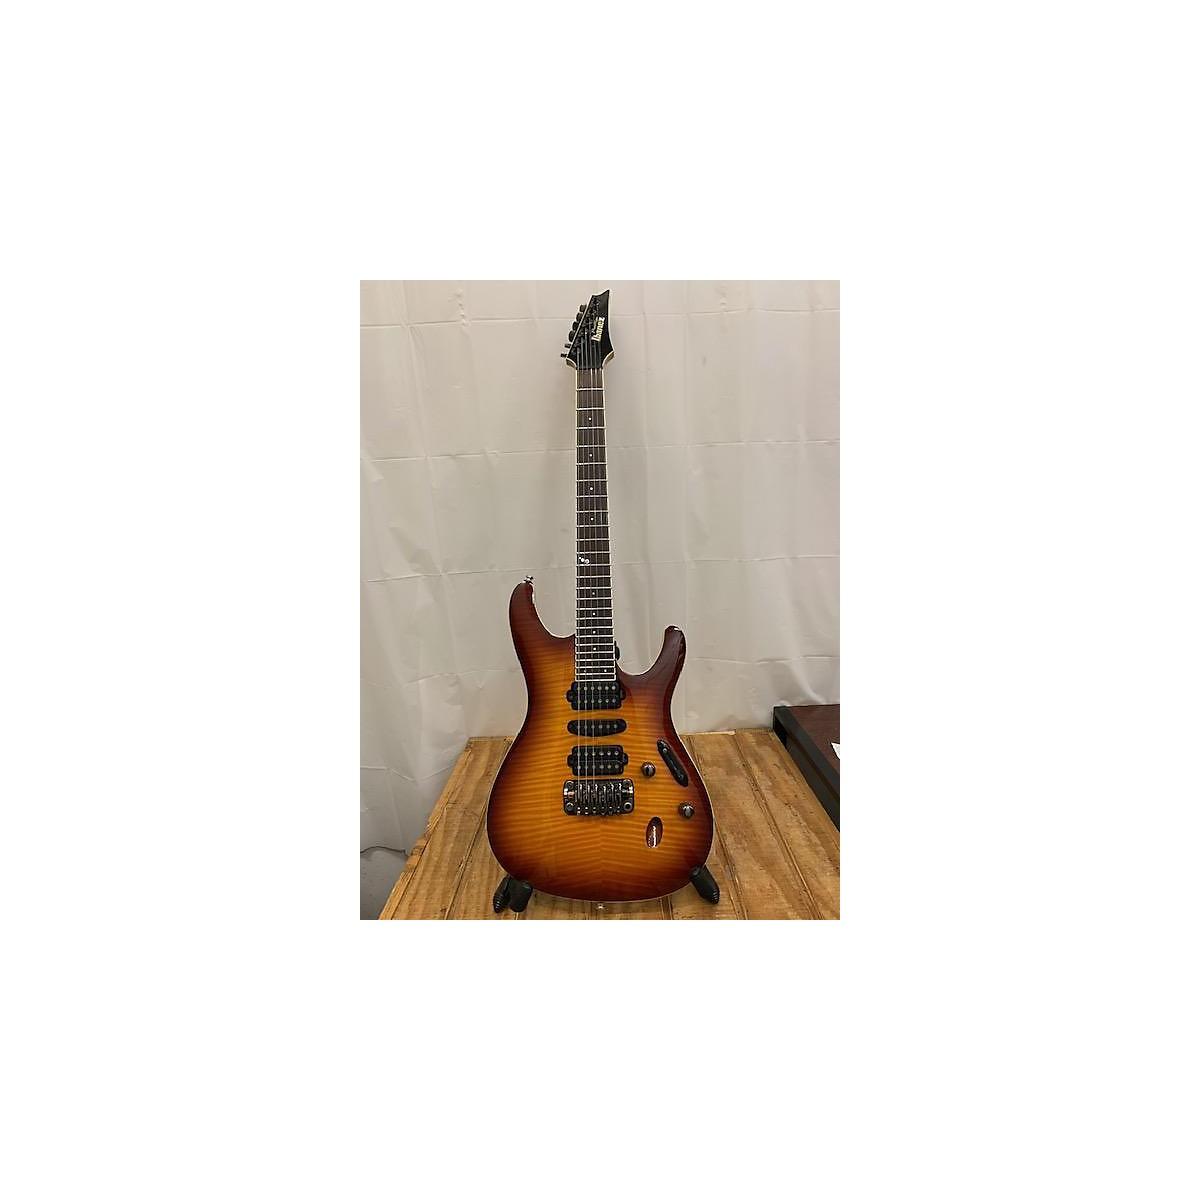 Ibanez SV5470 Solid Body Electric Guitar